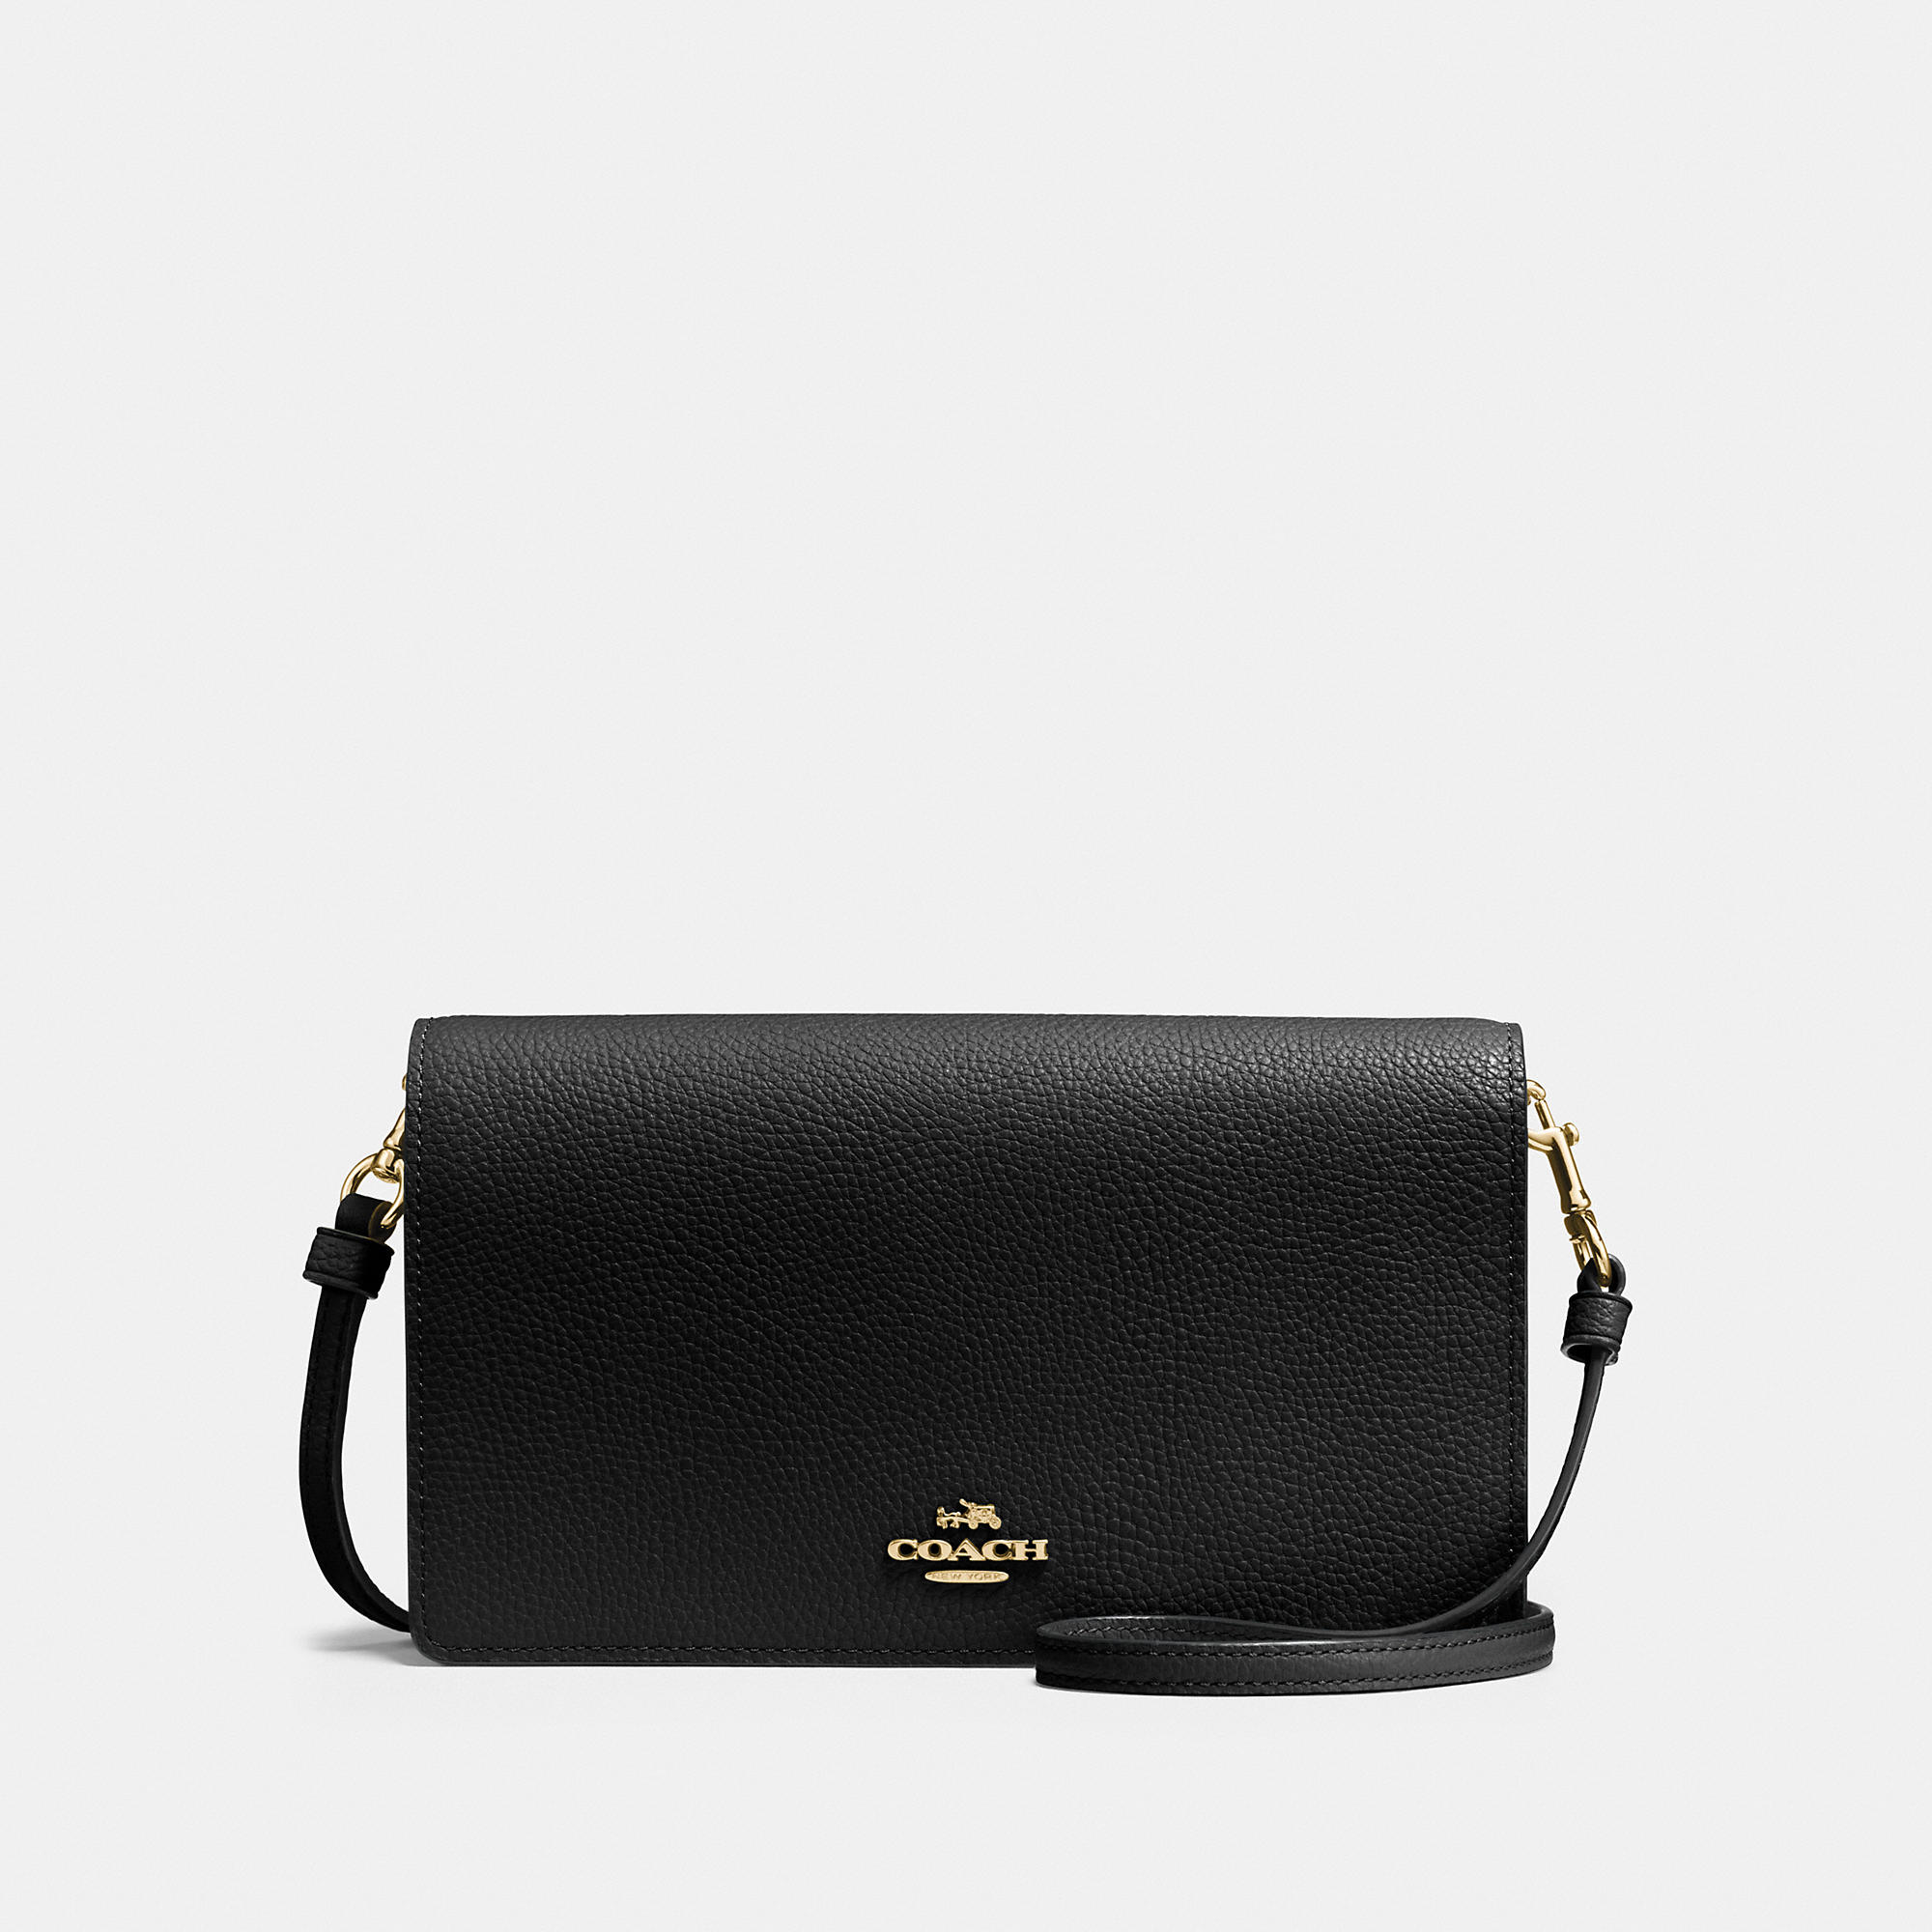 c6047cc22db3 Coach Foldover Crossbody Clutch In Polished Pebble Leather In Light  Gold Black